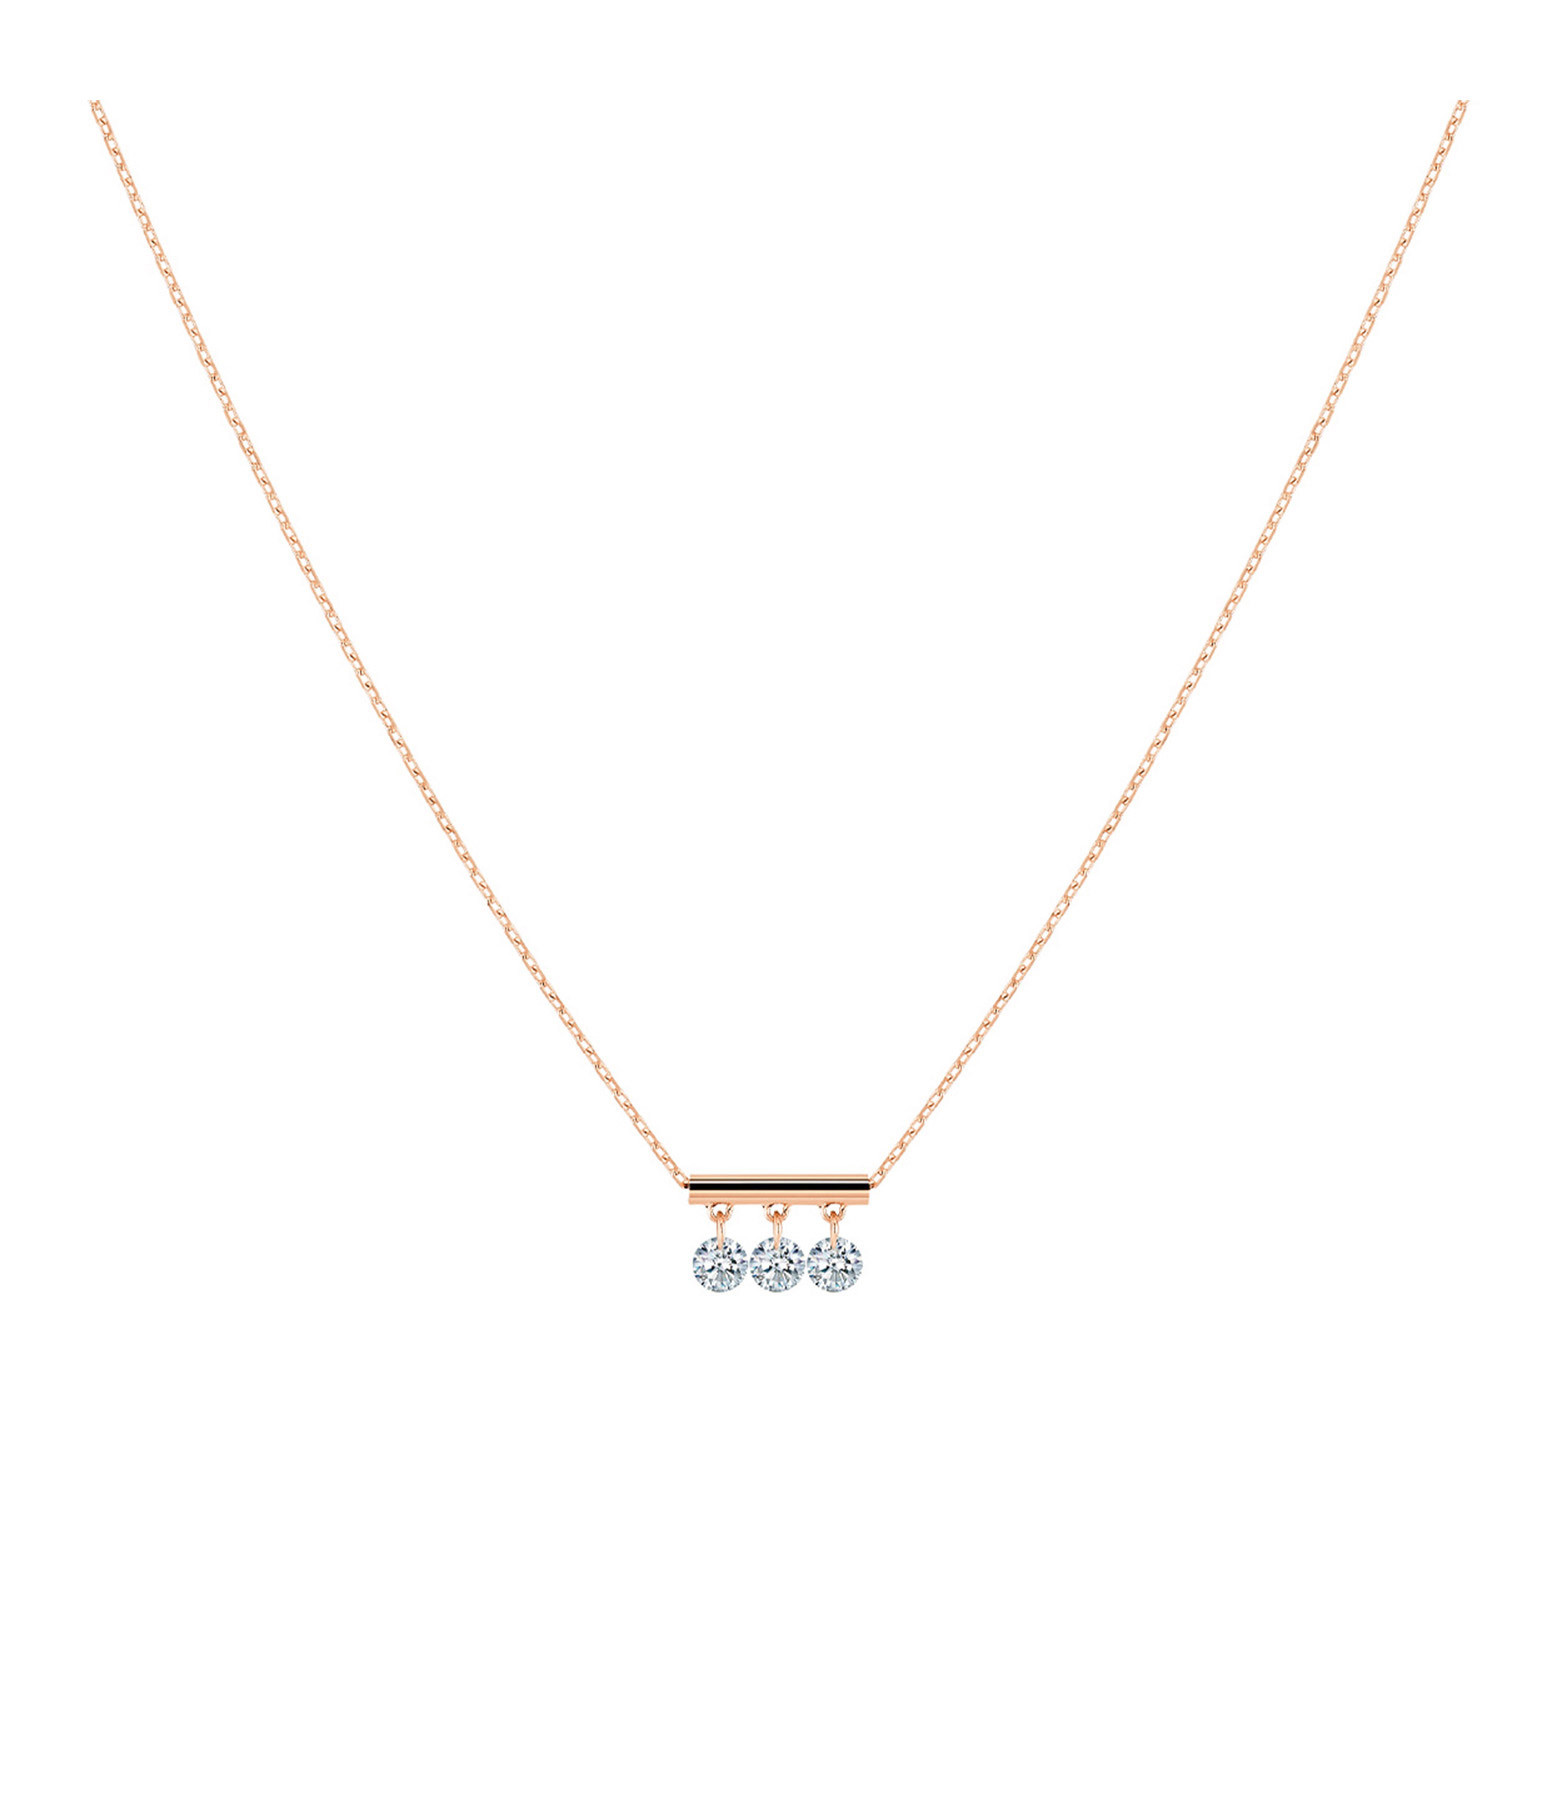 LA BRUNE & LA BLONDE - Collier Pampilles 3 Diamants Brillants Or Rose